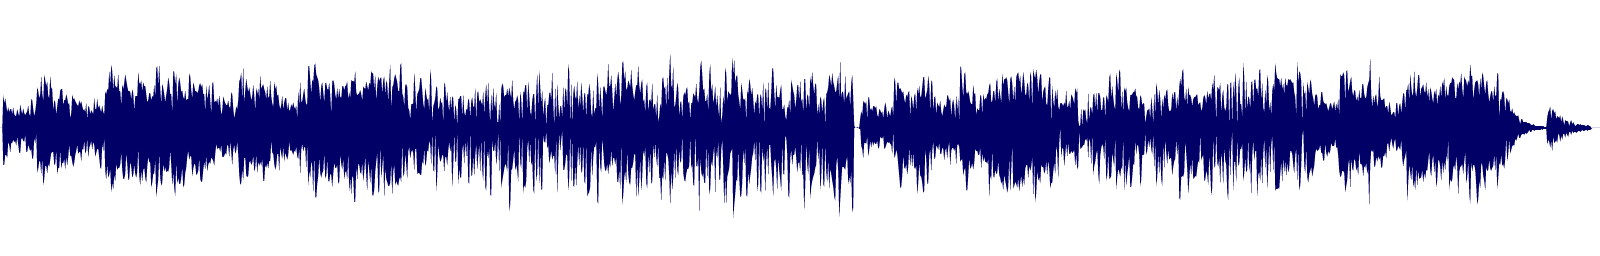 waveform of track #91652